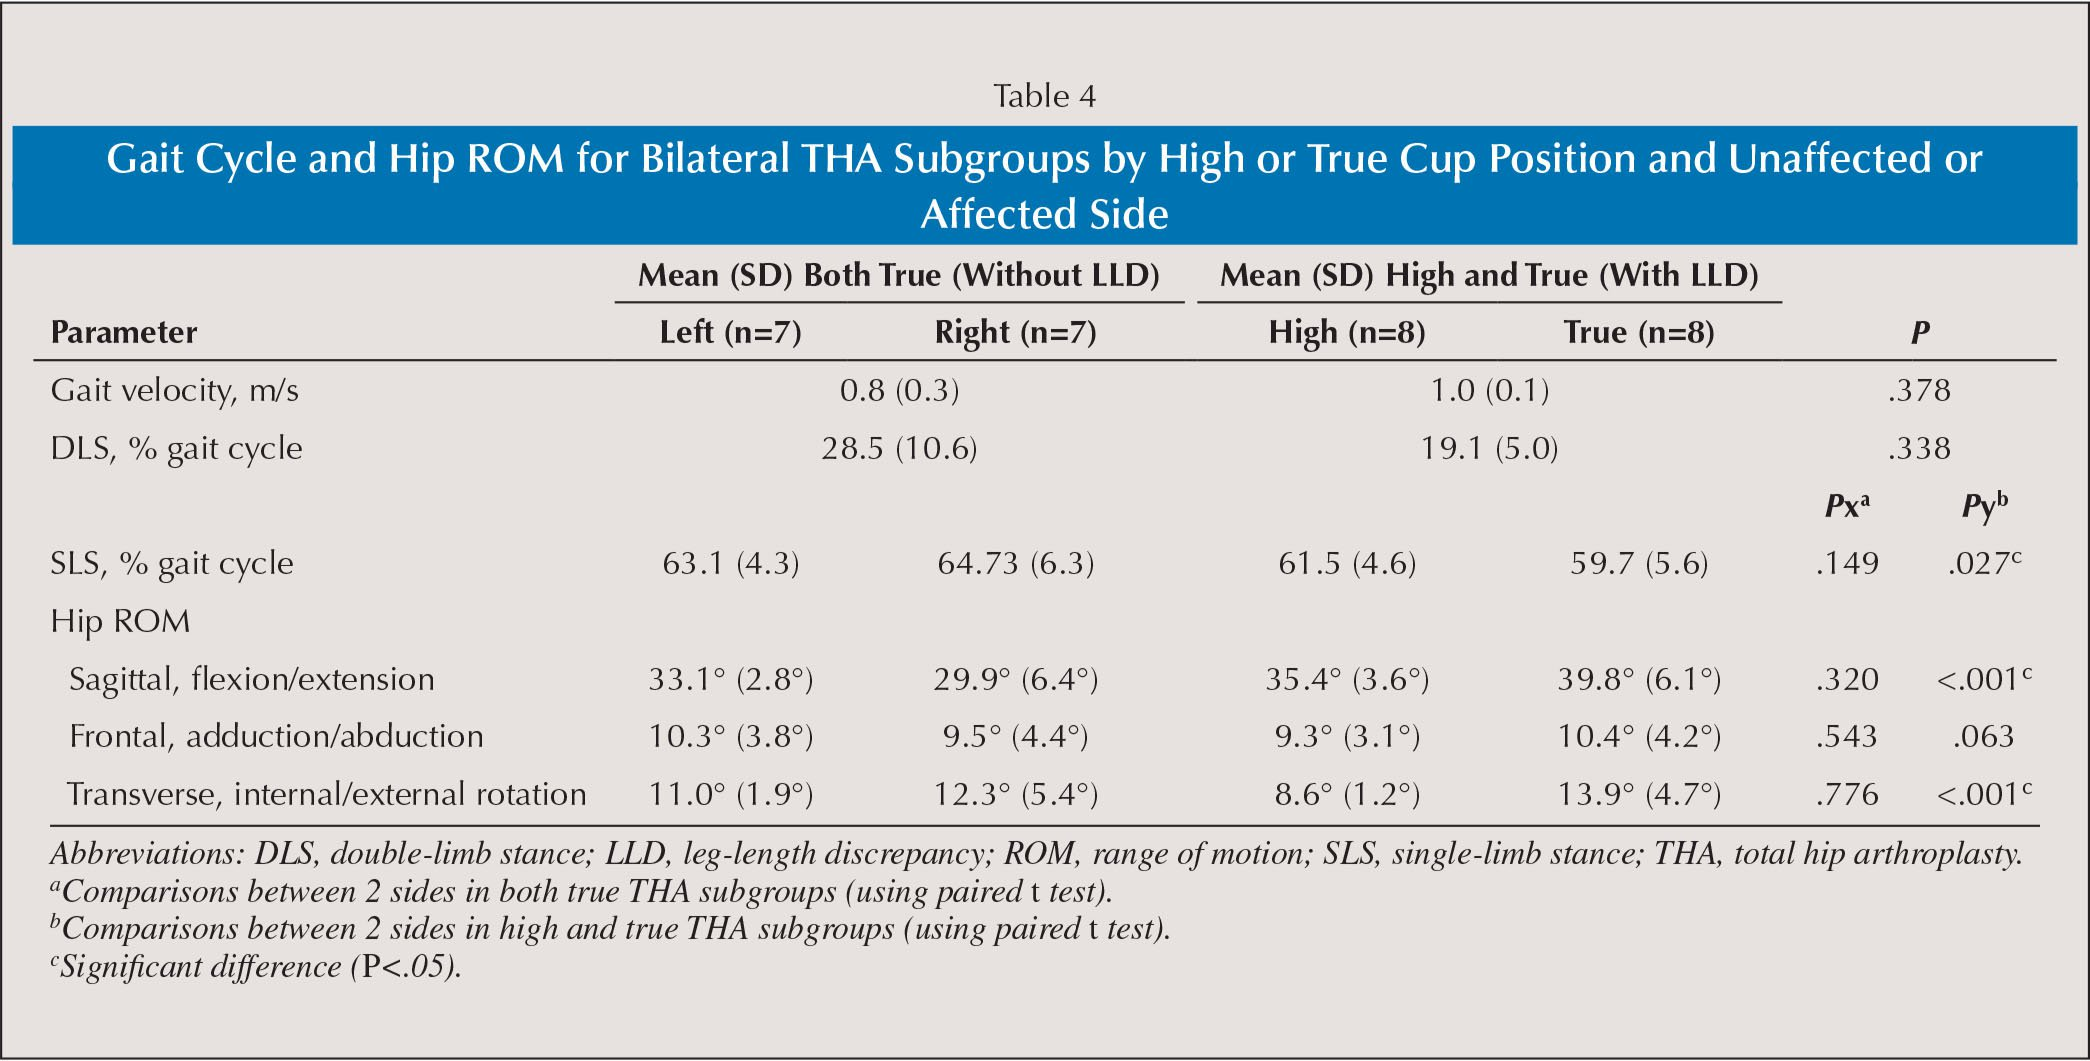 Gait Cycle and Hip ROM for Bilateral THA Subgroups by High or True Cup Position and Unaffected or Affected Side